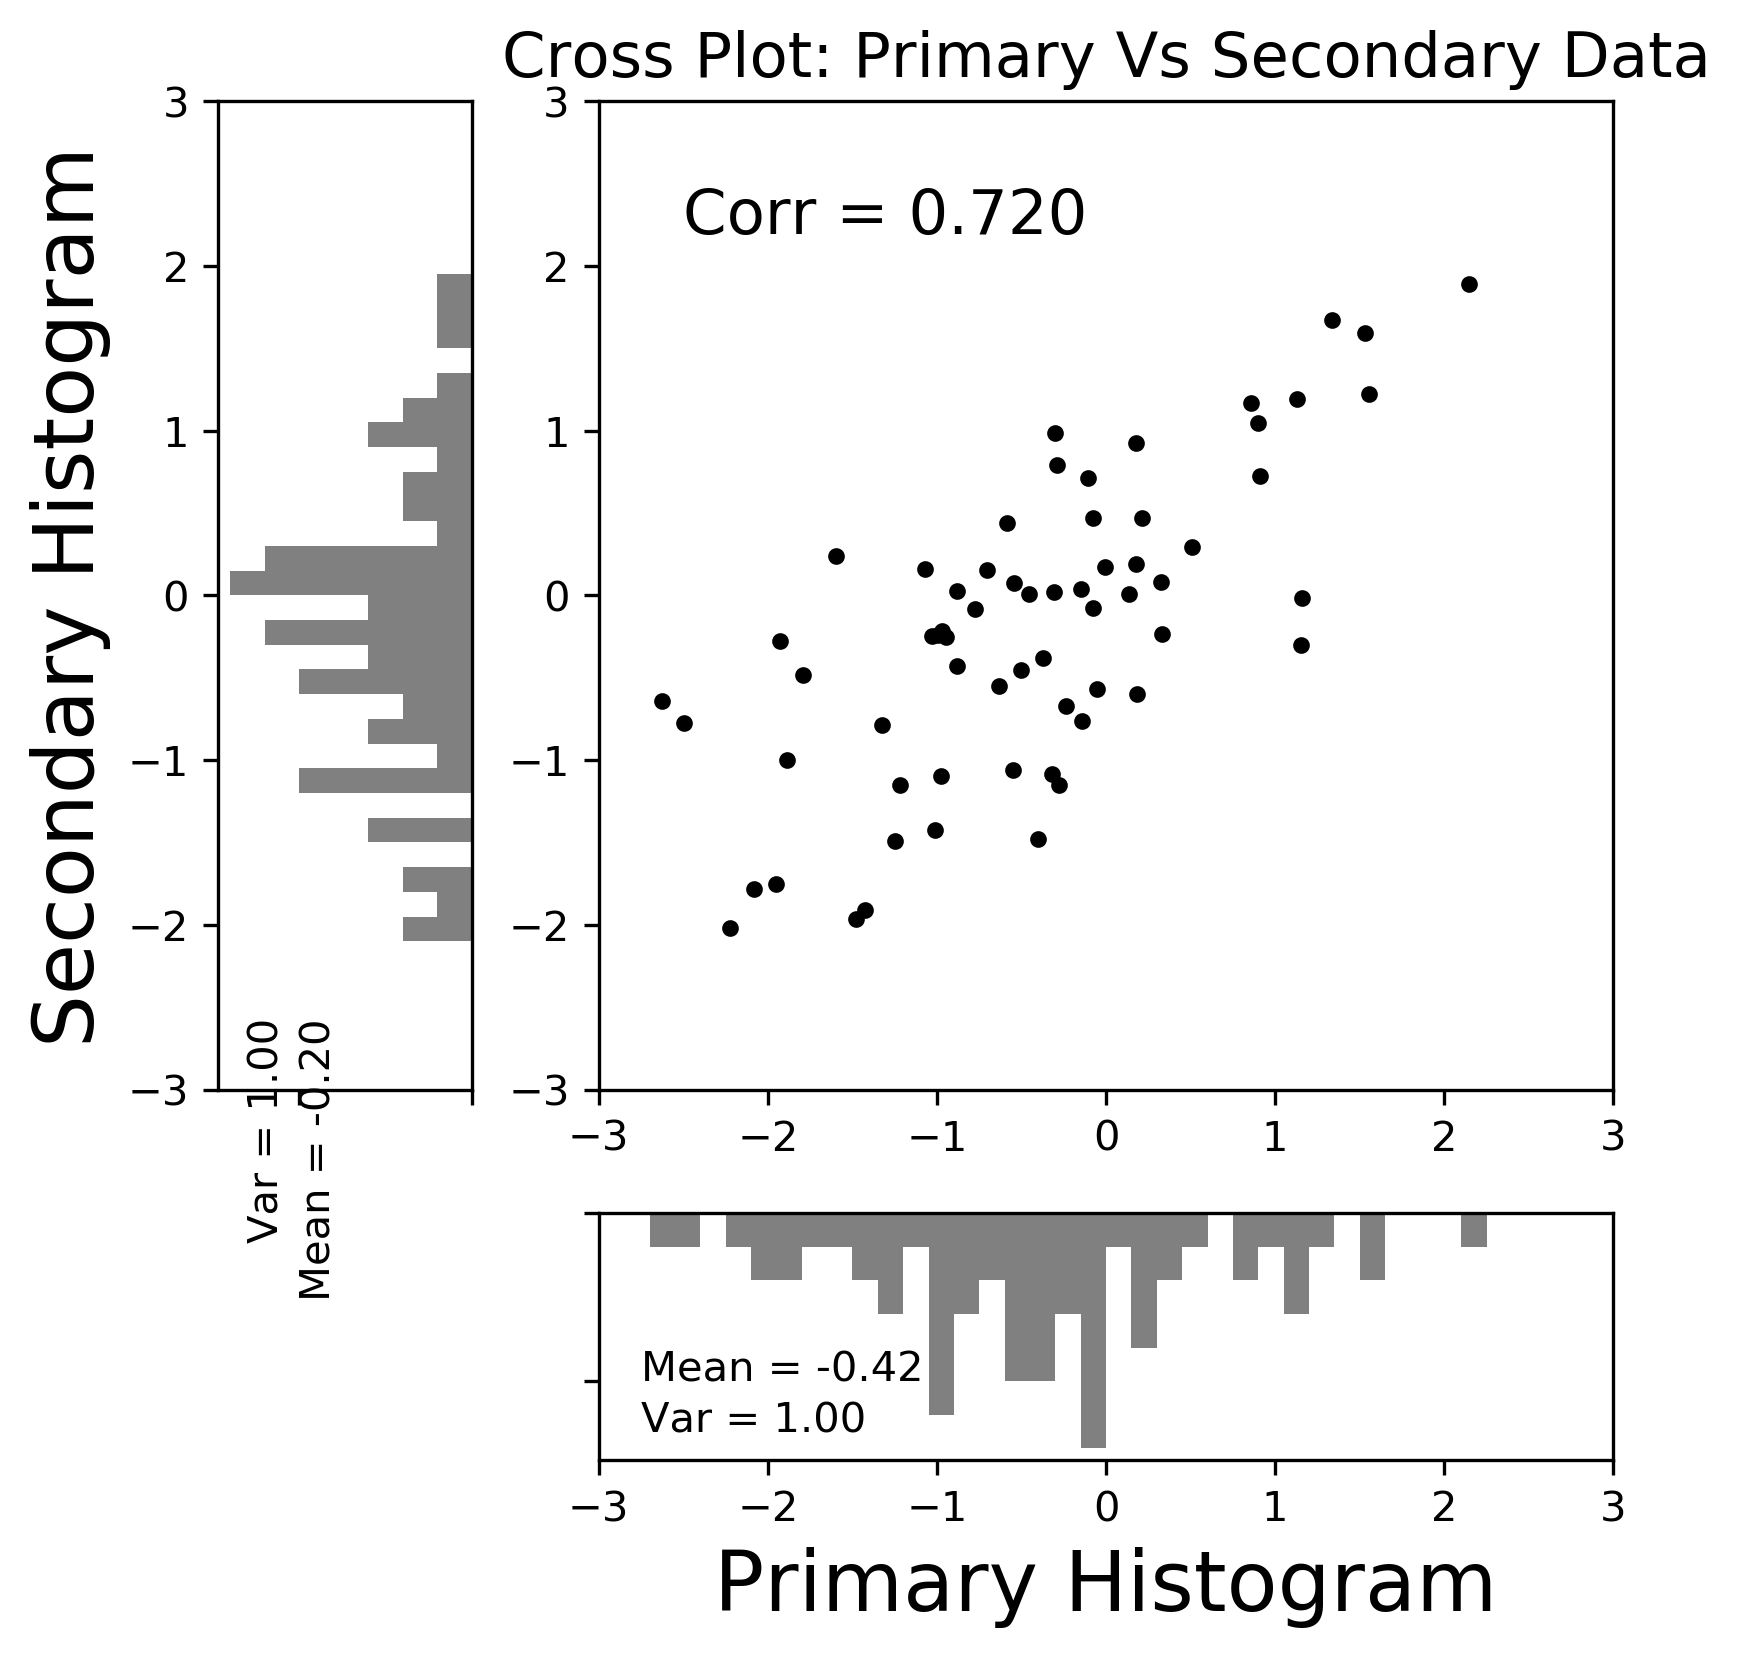 Cross plot of primary and secondary data.